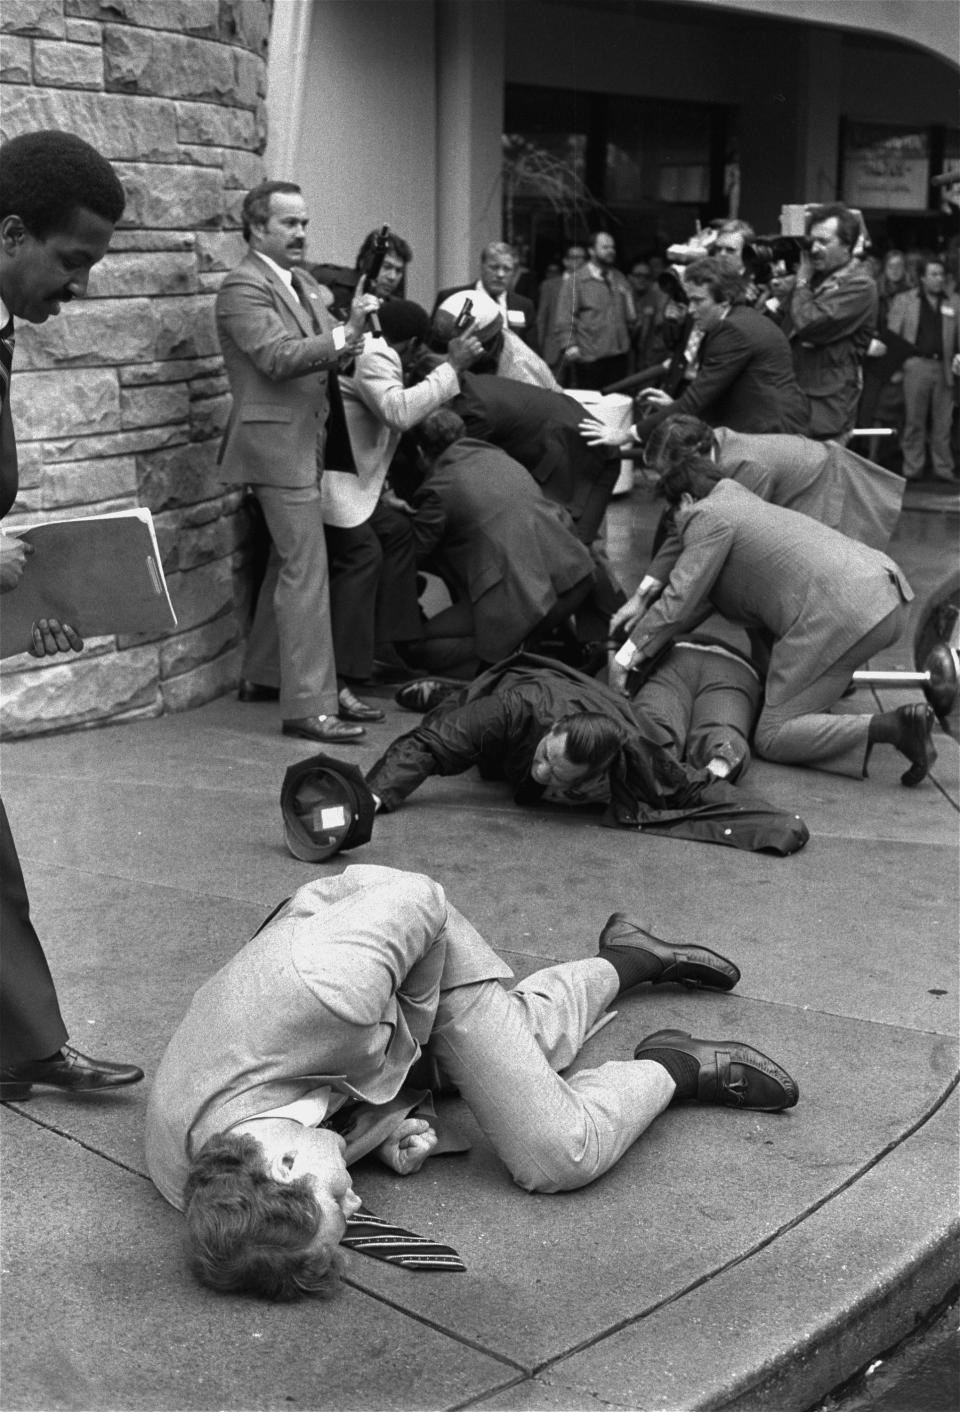 FILE - In this March 30, 1981, file photo, Secret Service agent Timothy J. McCarthy, foreground, Washington policeman Thomas K. Delehanty, center, and presidential press secretary James Brady, background, lie wounded on a street outside a Washington hotel after shots were fired at U.S. President Ronald Reagan. Lawyers for John Hinckley Jr., the man who tried to assassinate Reagan, are scheduled to argue in court Monday, Sept. 27, 2021, that the 66-year-old should be freed from restrictions placed on him after he moved out of a Washington hospital in 2016. (AP Photo/Ron Edmonds, File)